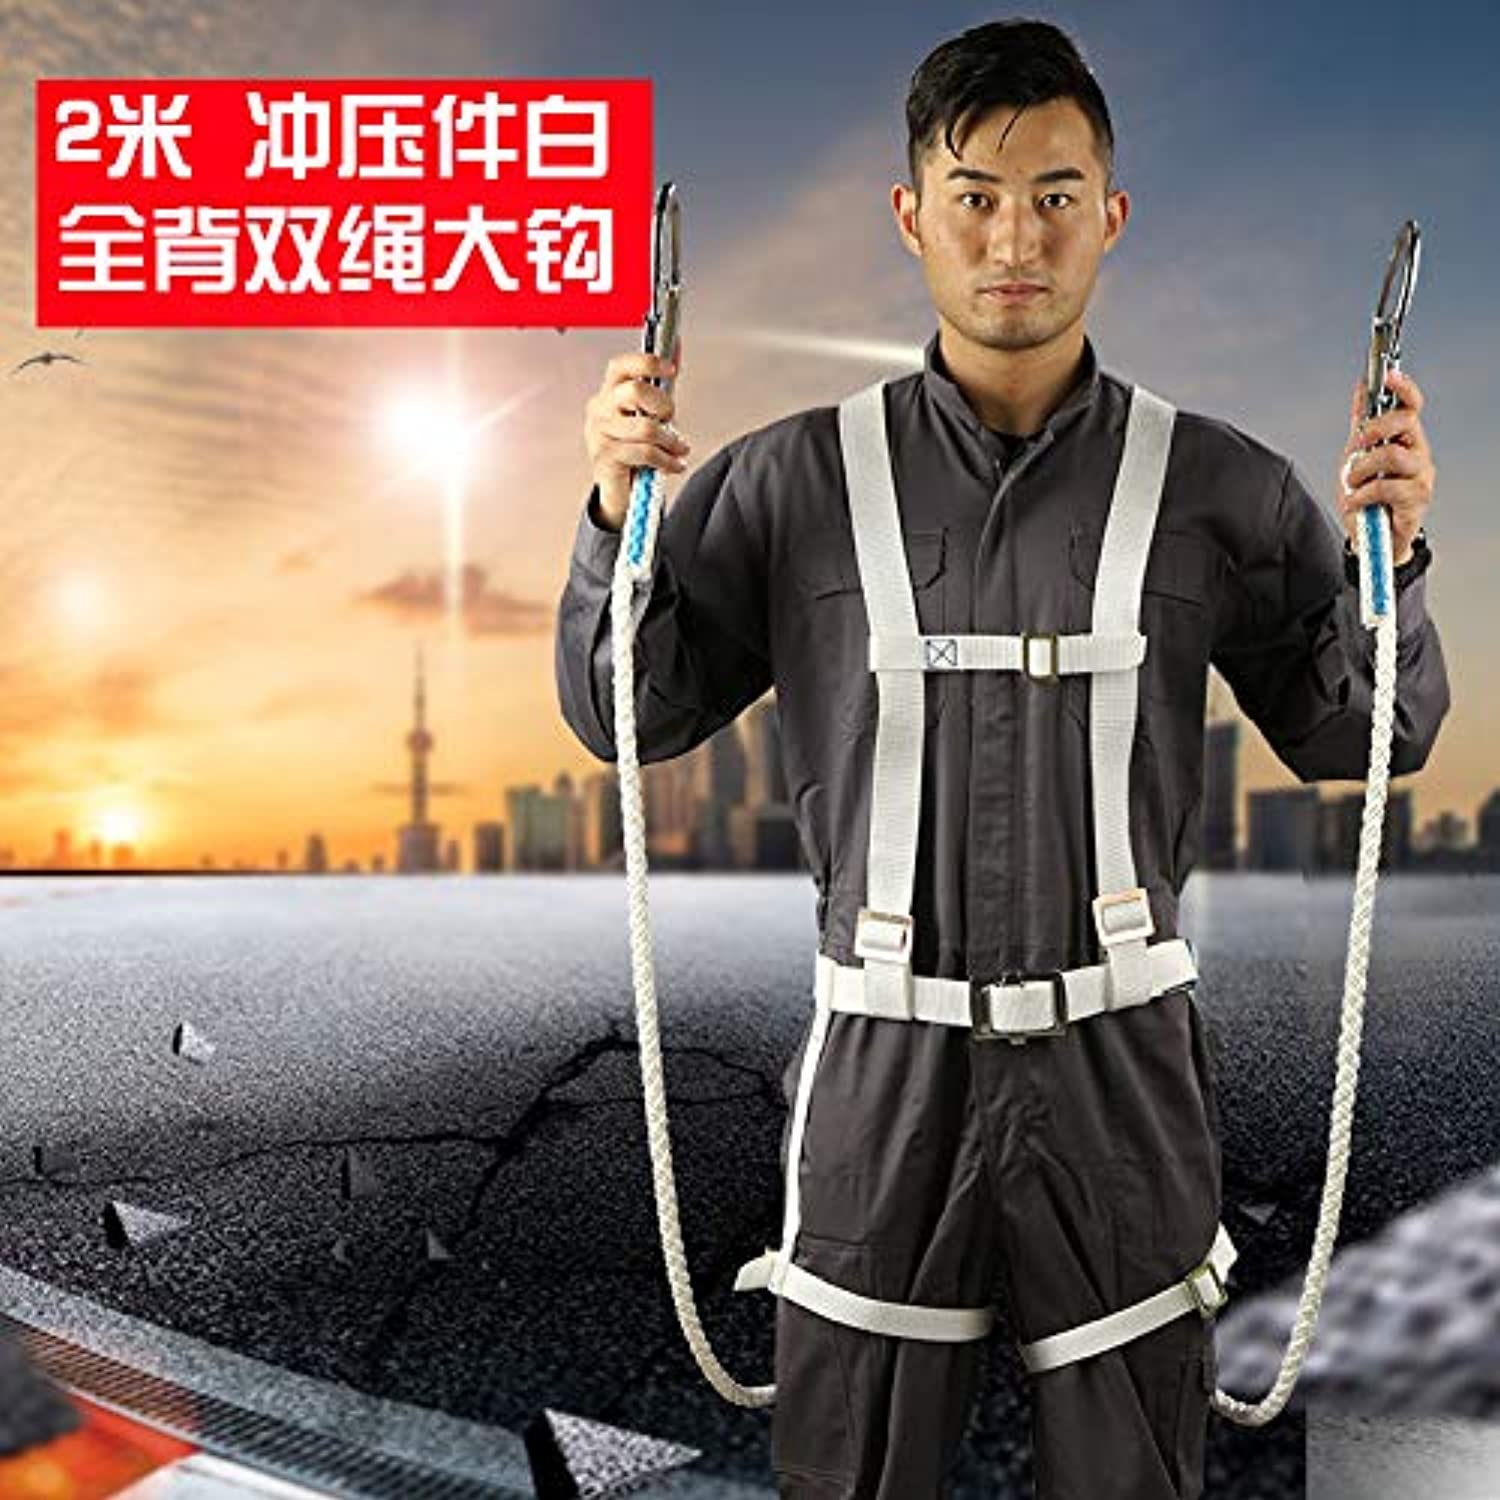 Huatai Double Hook Hanging Electrical Construction Fall Predection Safety Belt Aerial Work Full-Back